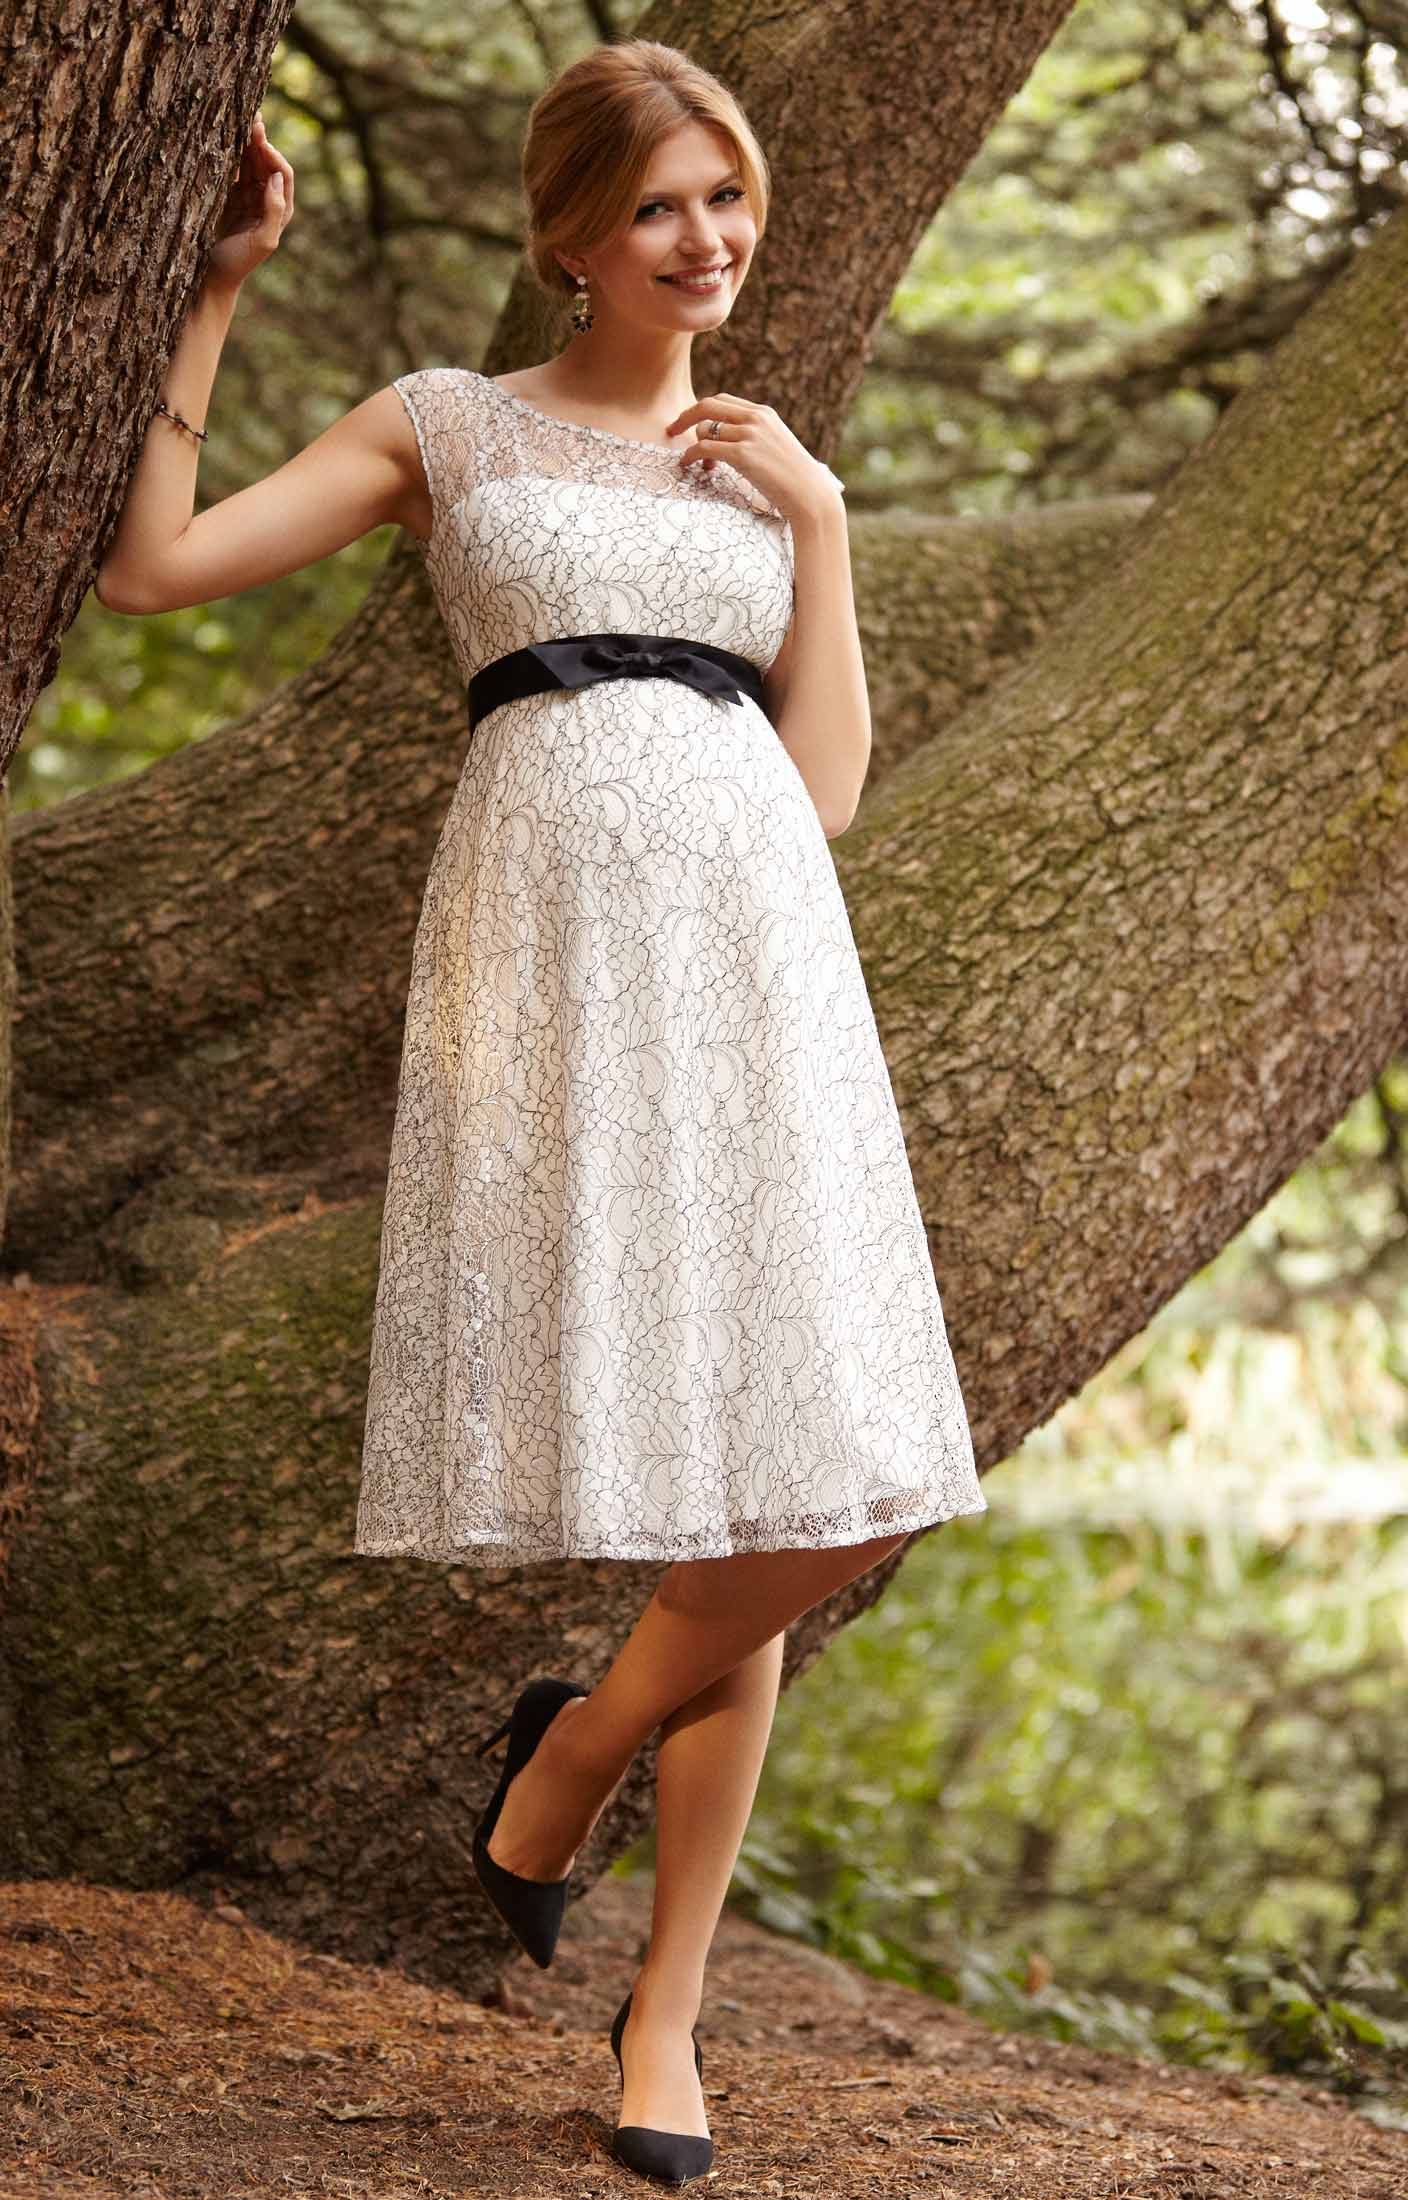 Daisy maternity dress mono lace maternity wedding dresses daisy maternity dress mono lace by tiffany rose ombrellifo Image collections